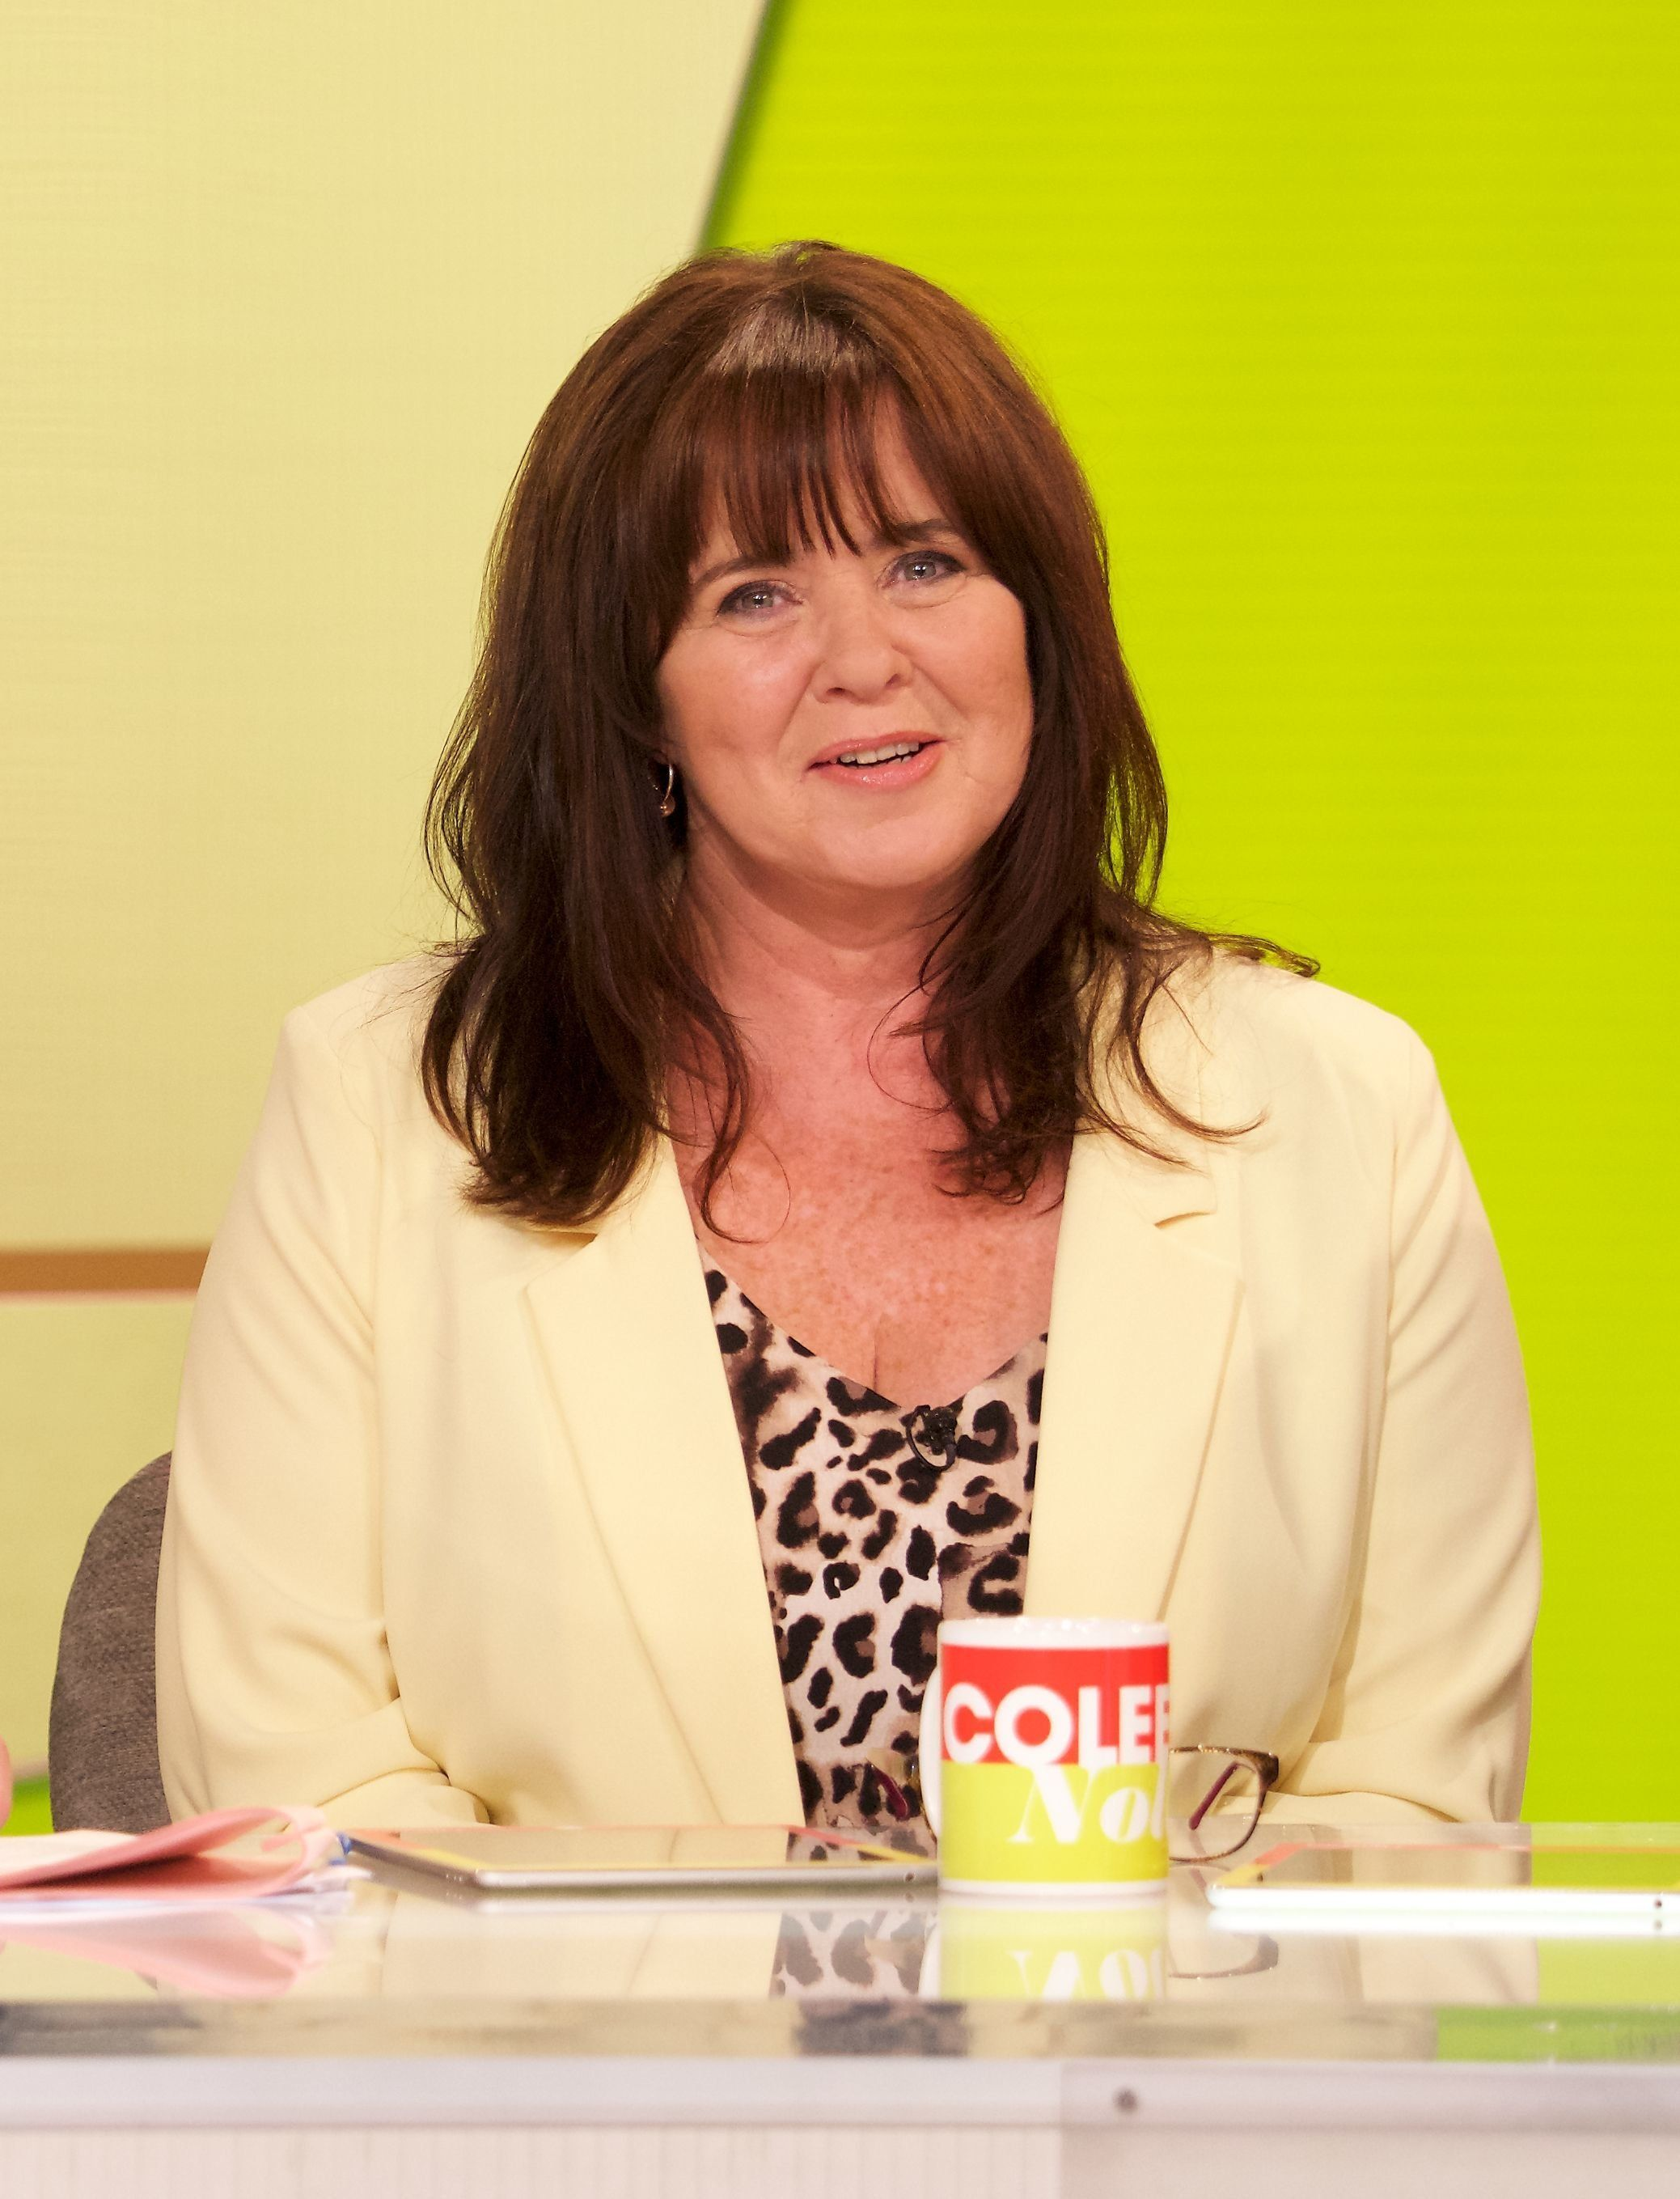 Coleen Nolan Addresses Kim Woodburn 'Loose Women' Controversy, Insisting She's No